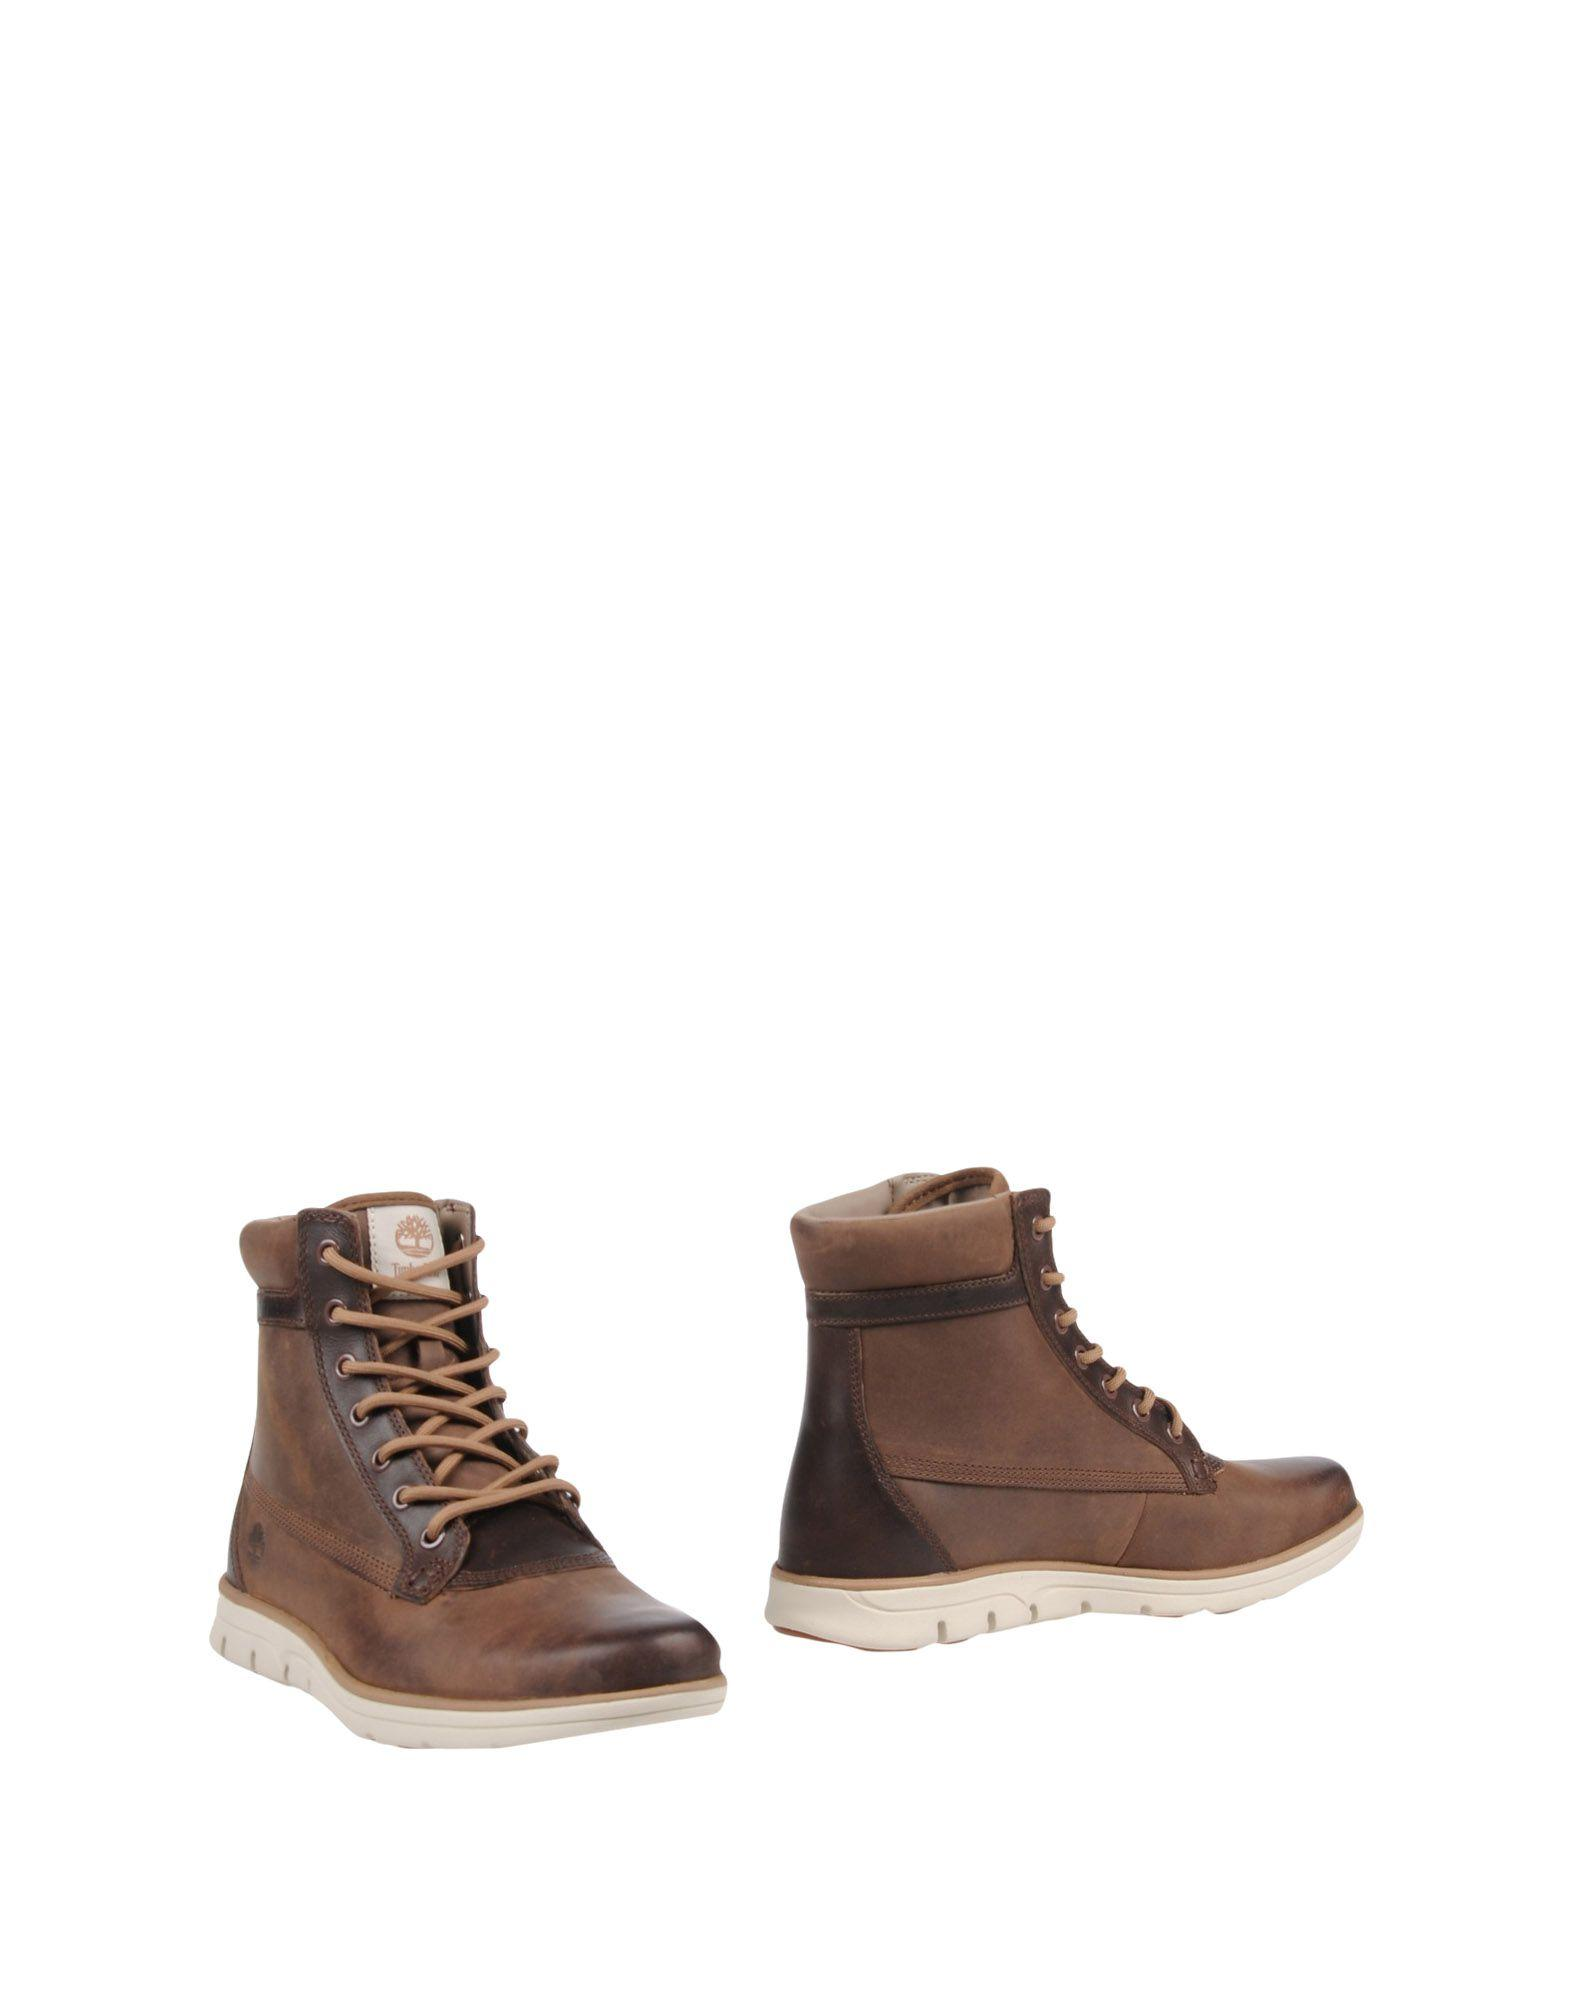 Timberland Ankle Boots In Dark Brown